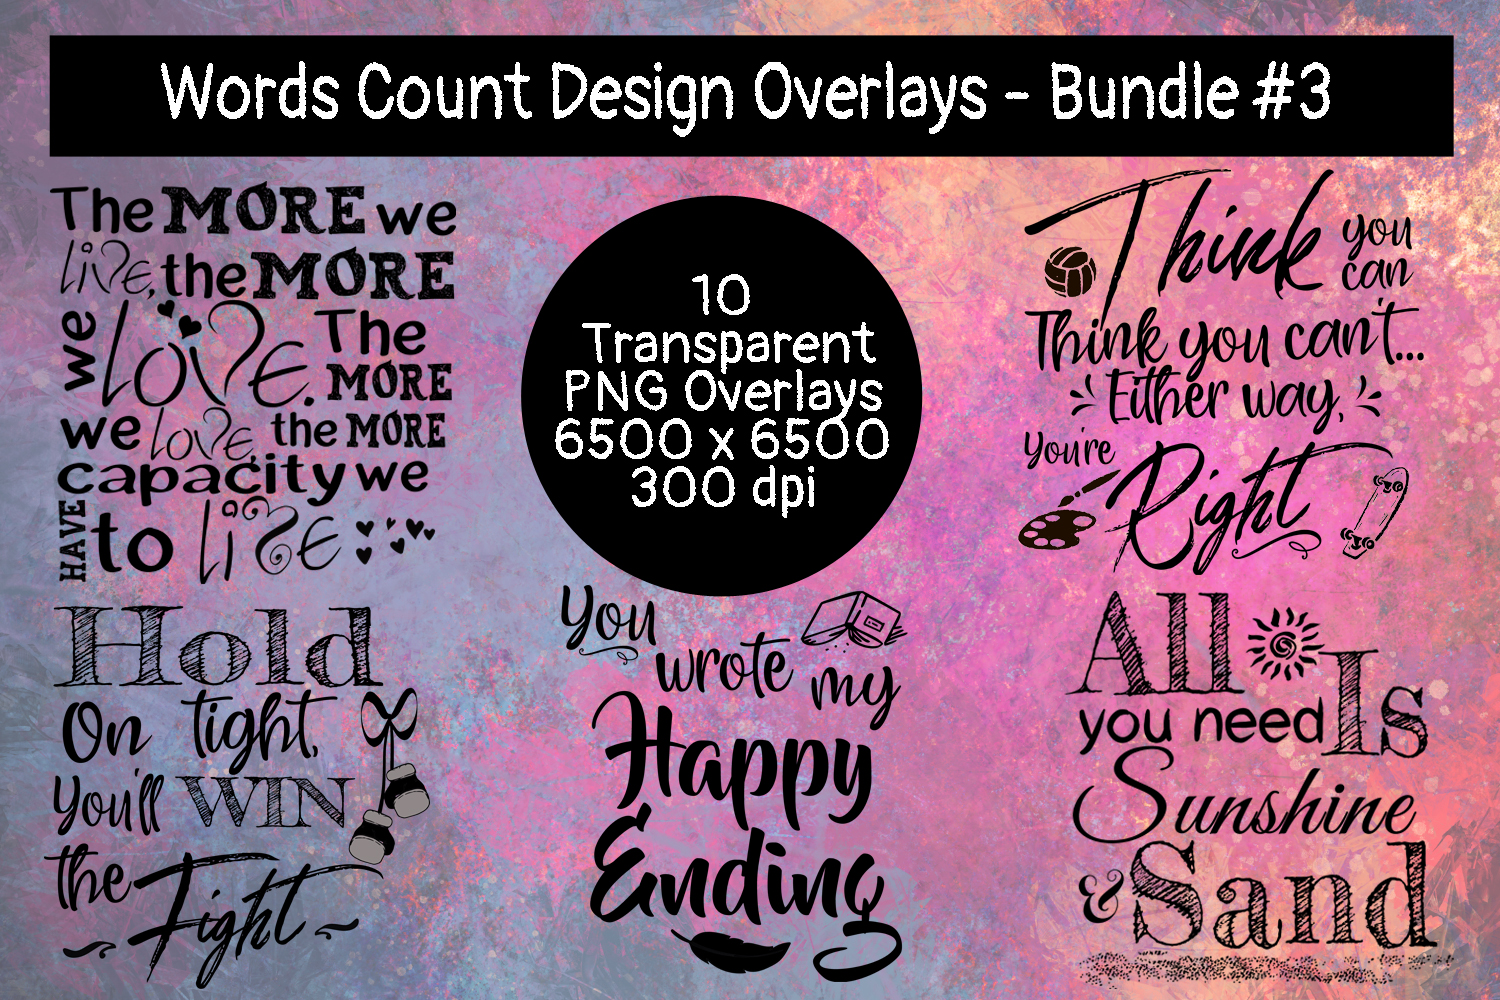 Words Count Design Overlays Bundle #3 example image 2